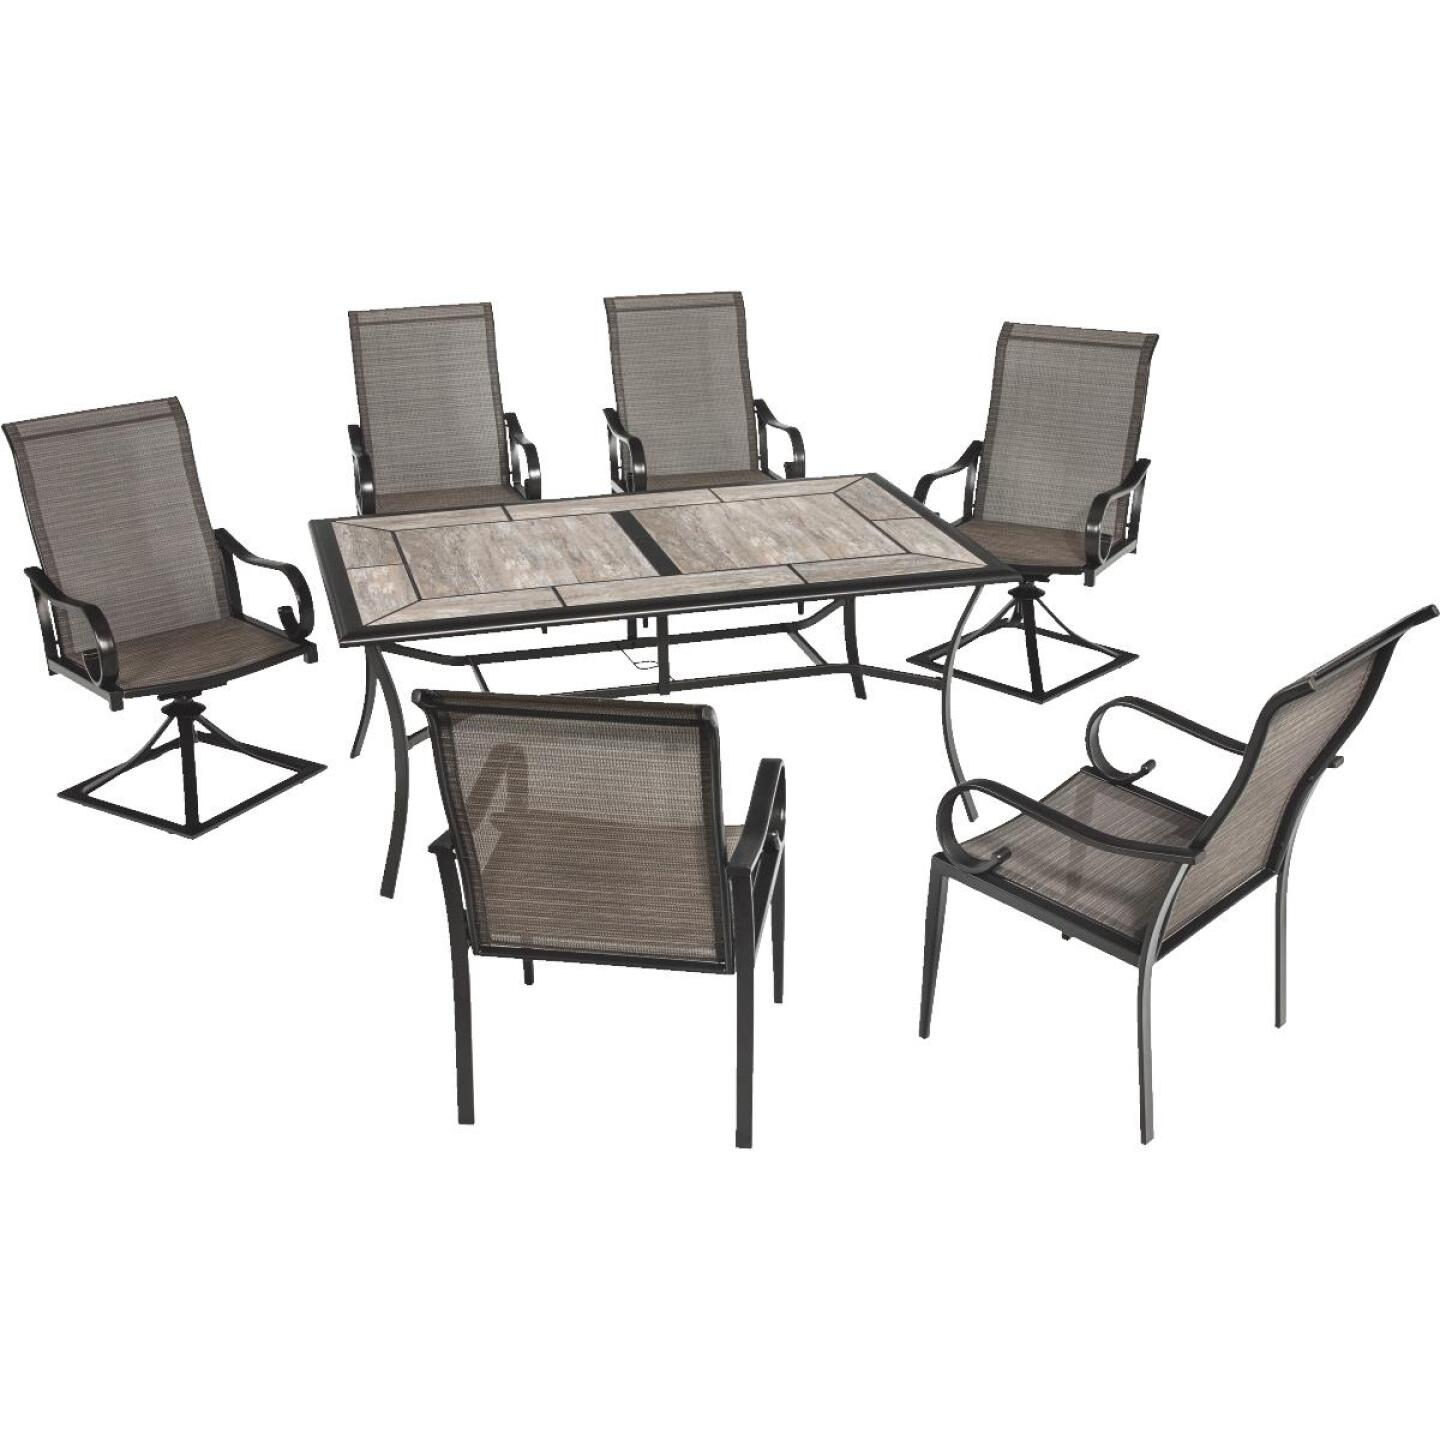 Outdoor Expressions Berkshire 7-Piece Dining Set Image 18